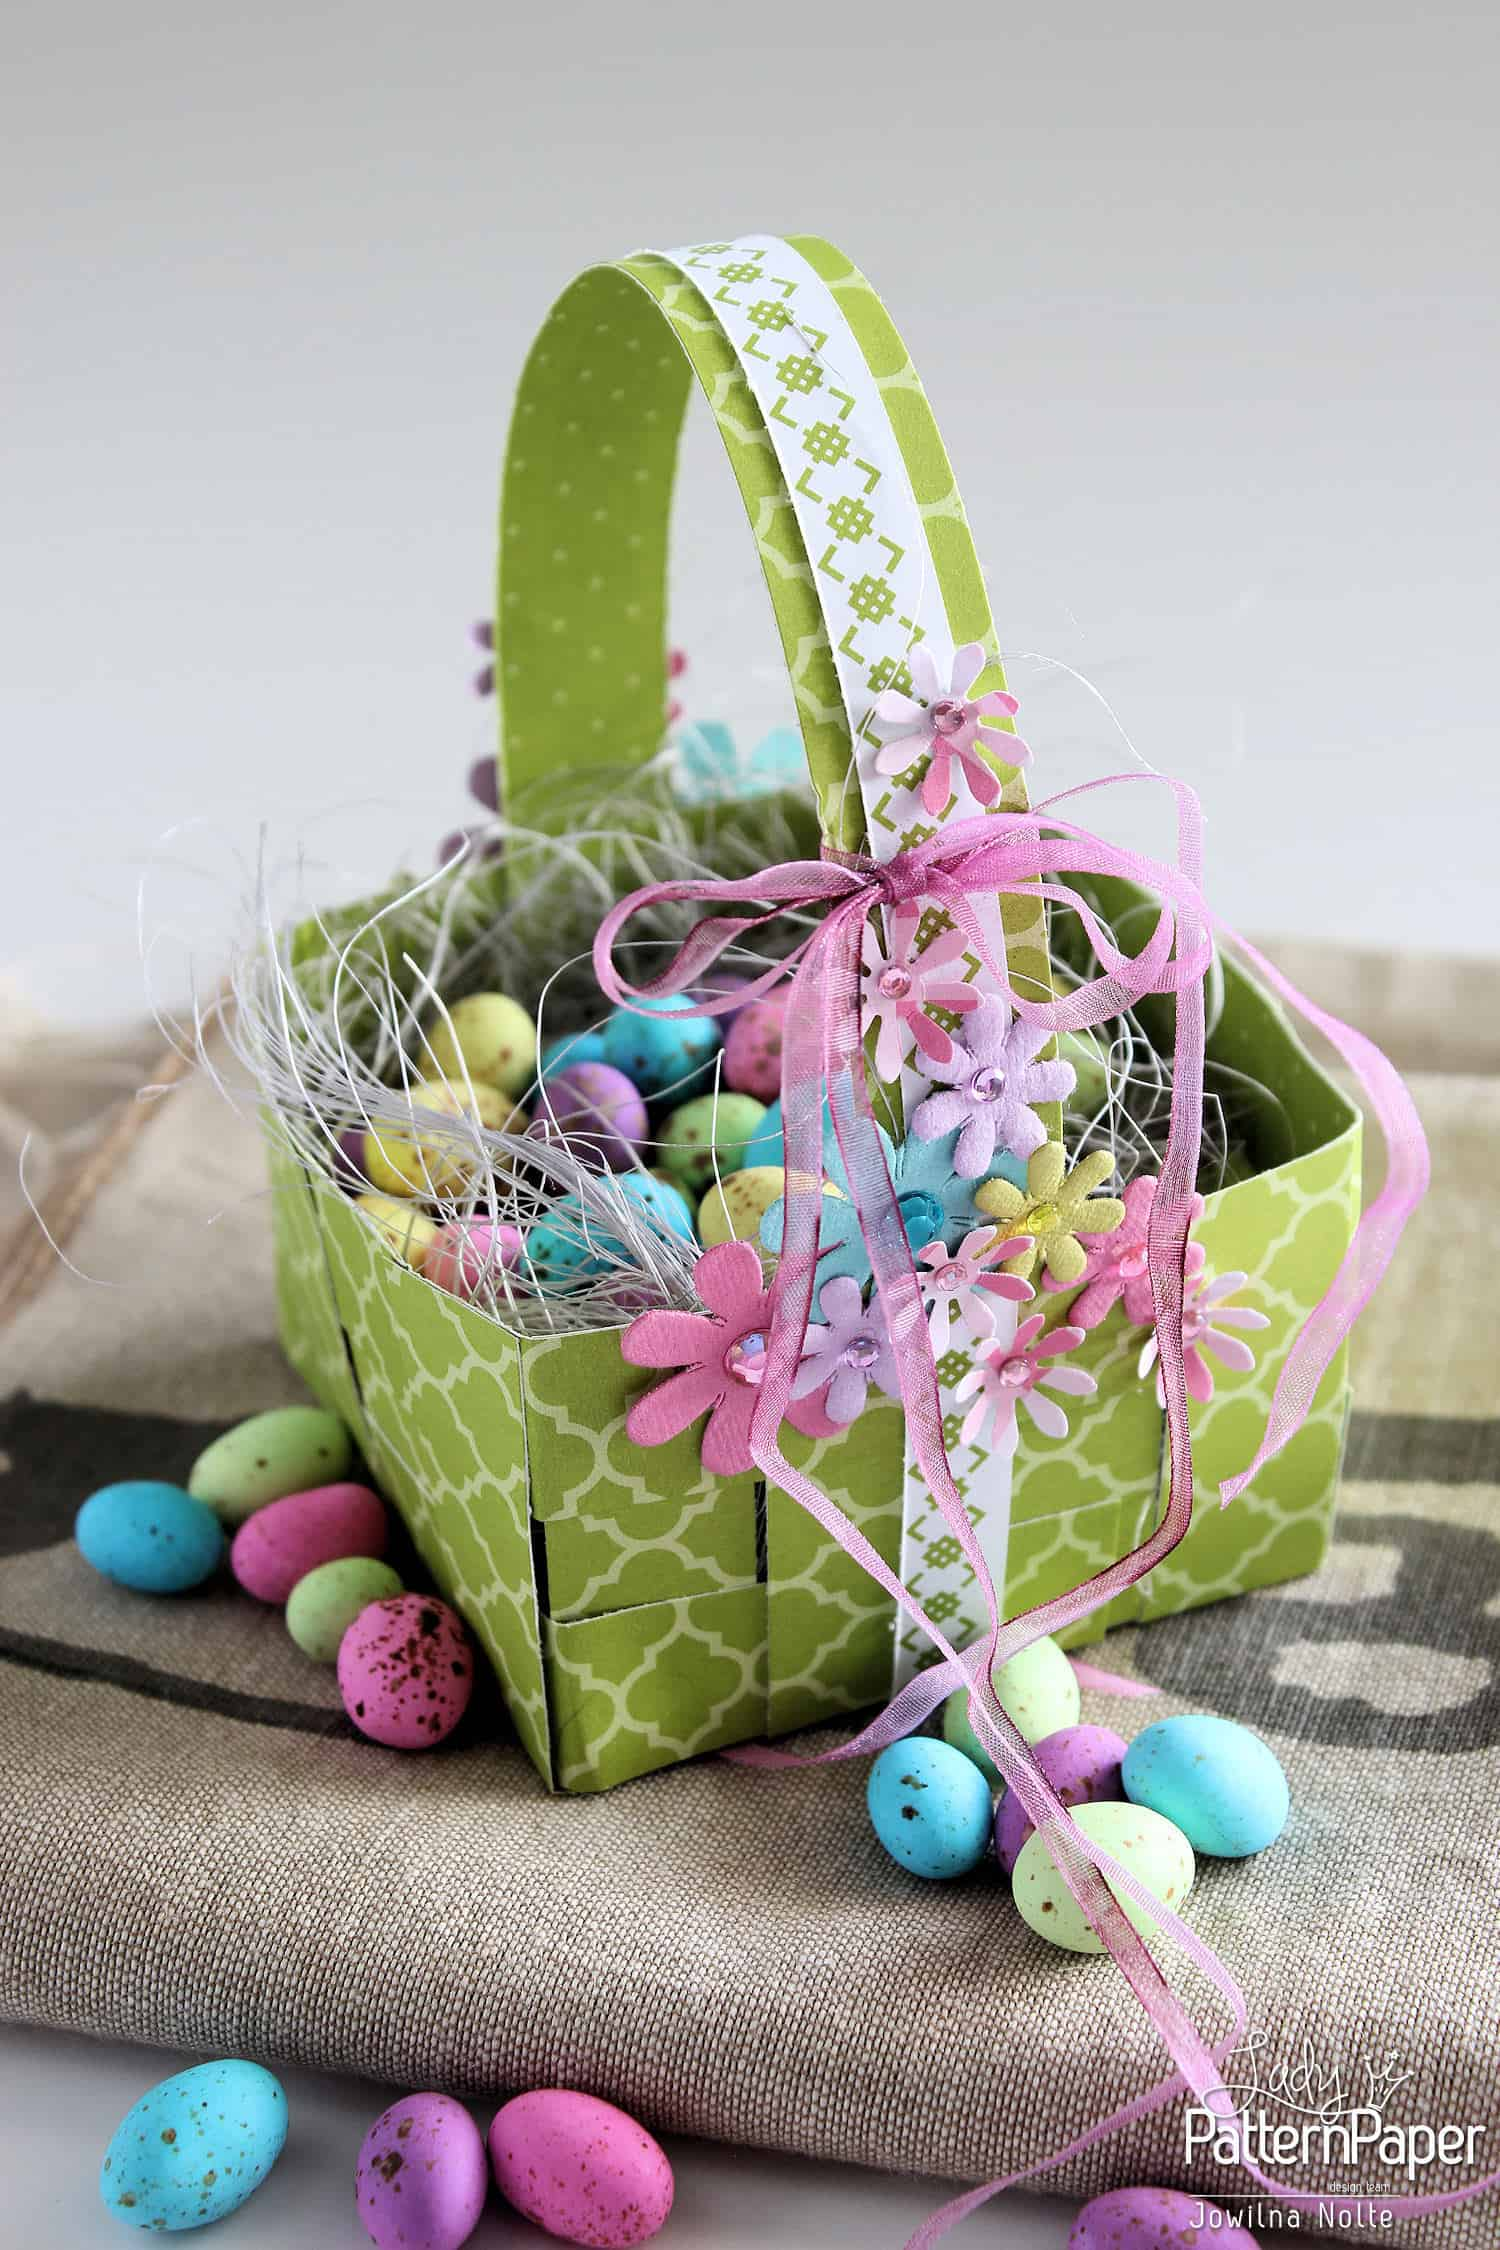 How To Make A Woven Easter Basket : Woven easter basket easy step by lady pattern